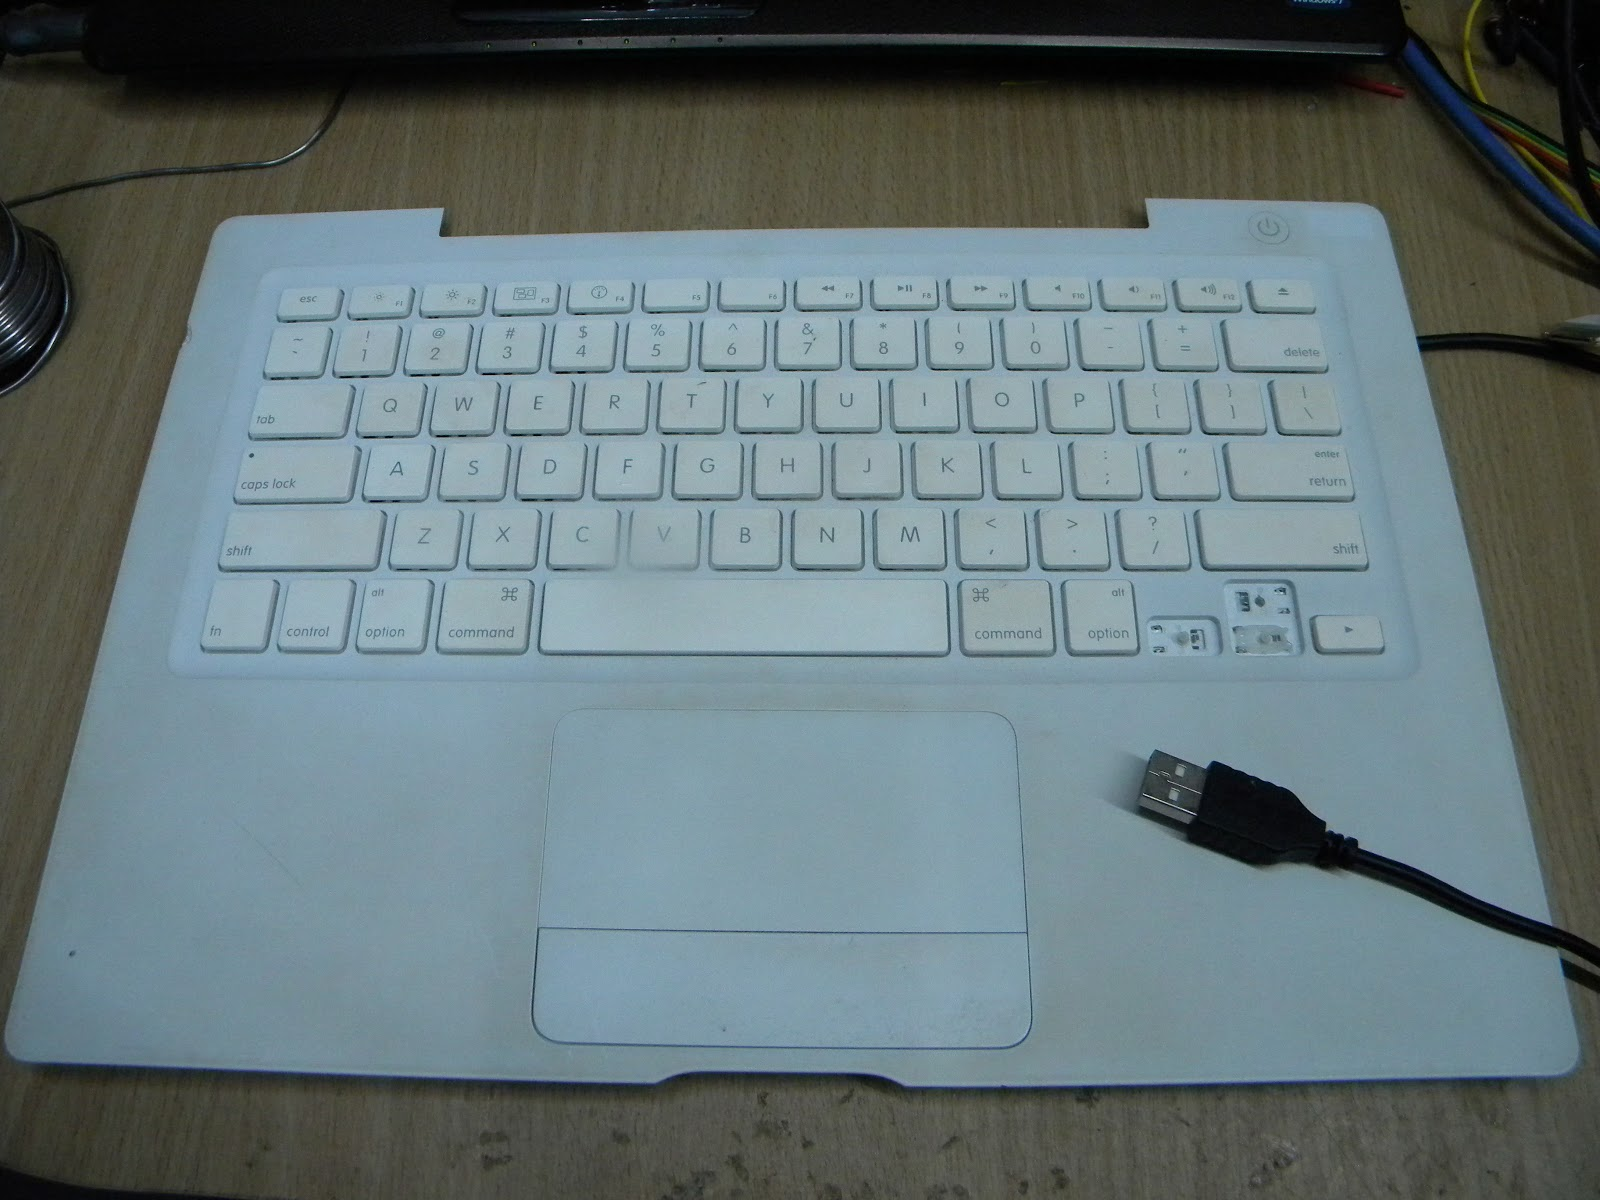 Attempted maker: Converting Macbook keyboard/touch pad into USB ...